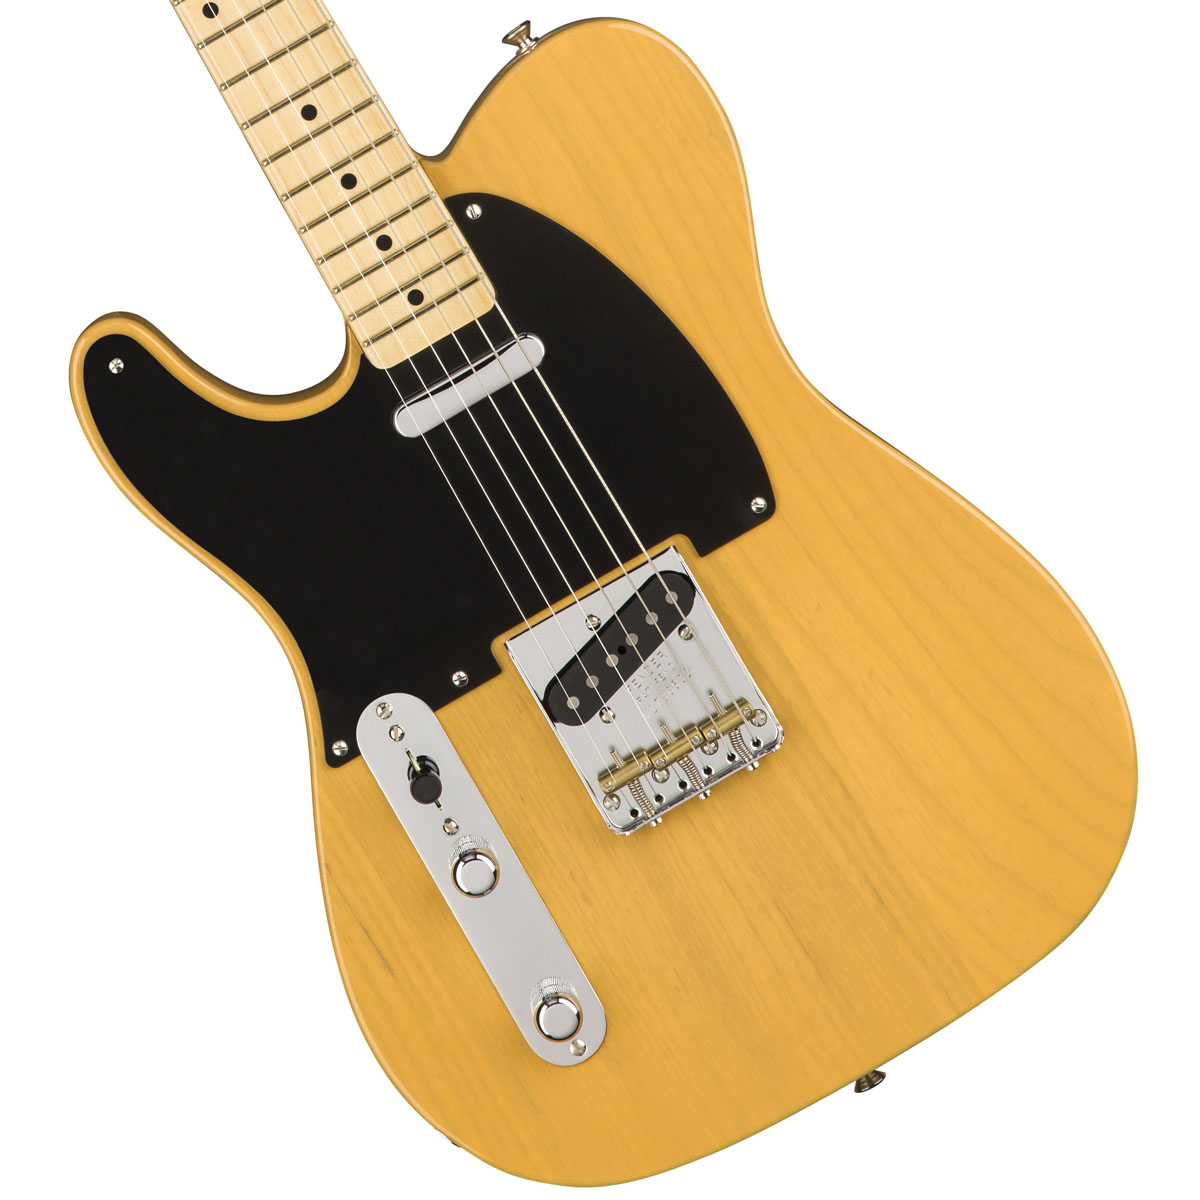 Fender USA / American Original 50s Telecaster Butterscotch Blonde Lefty (Left Hand LH) 《カスタムショップのお手入れ用品を進呈/+671038200》《フェンダー純正グッズを進呈/+79083》